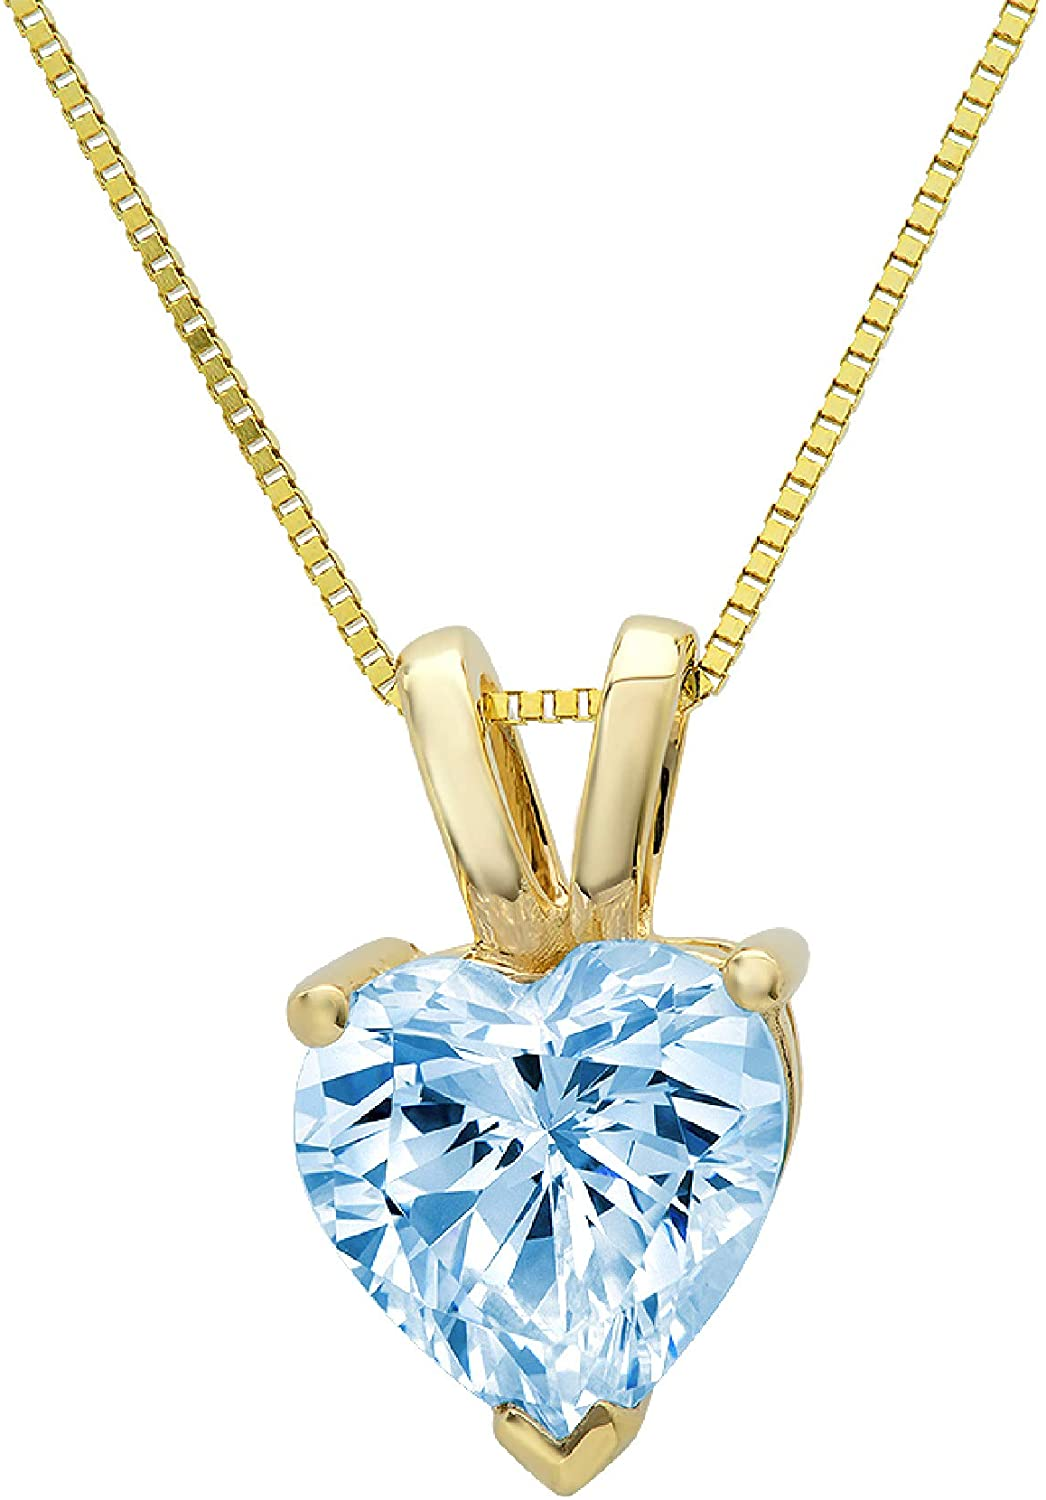 1.95 ct Brilliant Heart Cut Aquamarine Blue Simulated diamond Cubic Zirconia Ideal VVS1 D Solitaire Pendant Necklace With 16 Gold Chain box Solid Real 14k Yellow Gold